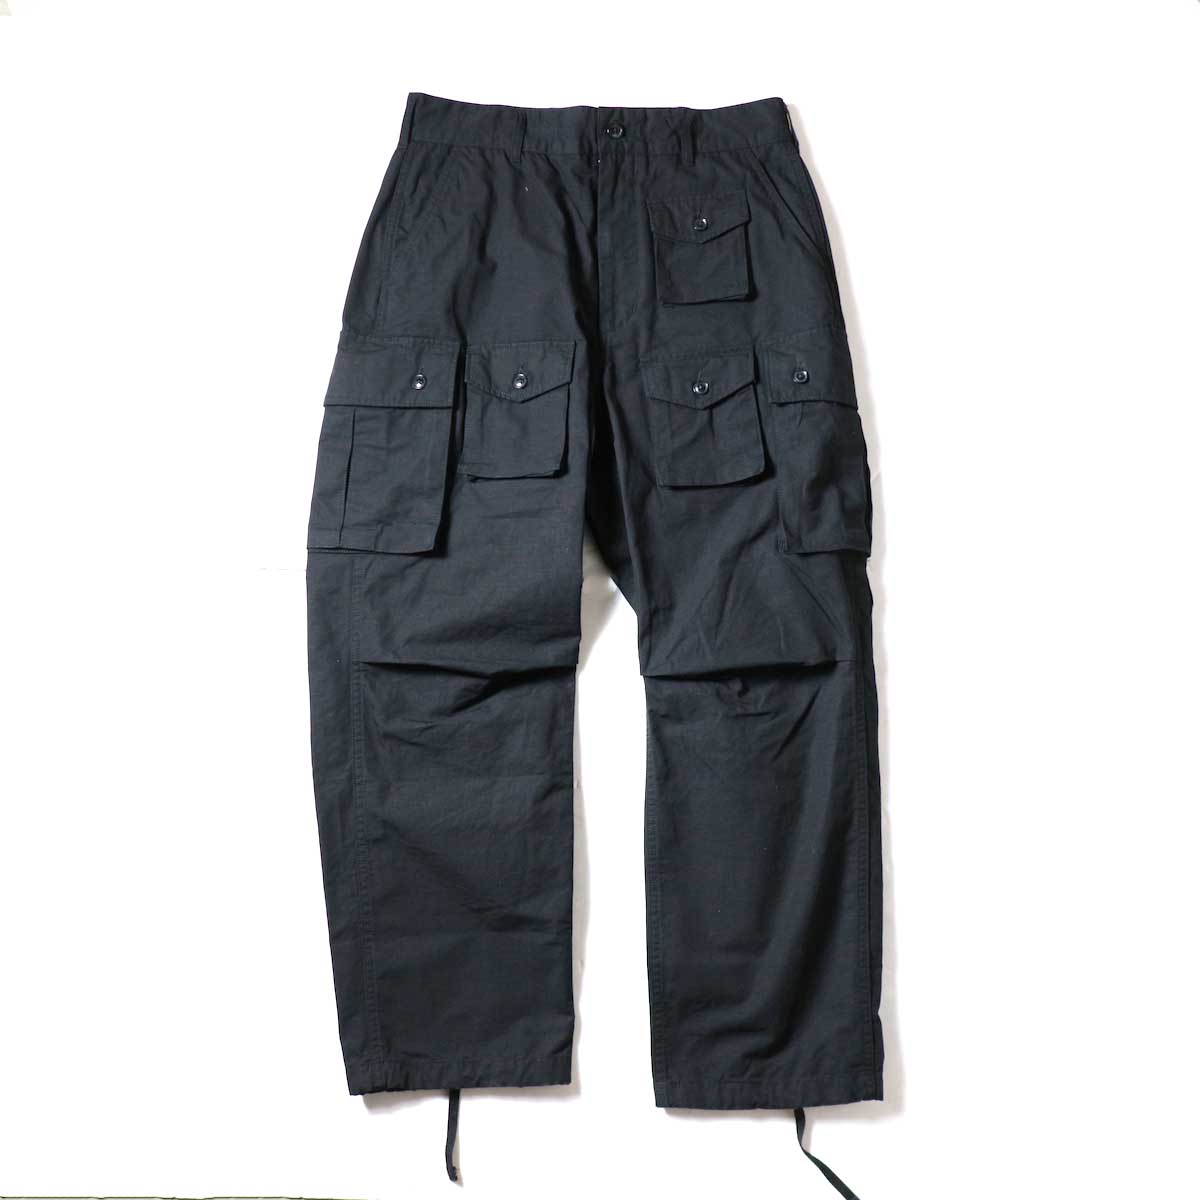 ENGINEERED GARMENTS / FA Pant - Cotton Ripstop (Black)